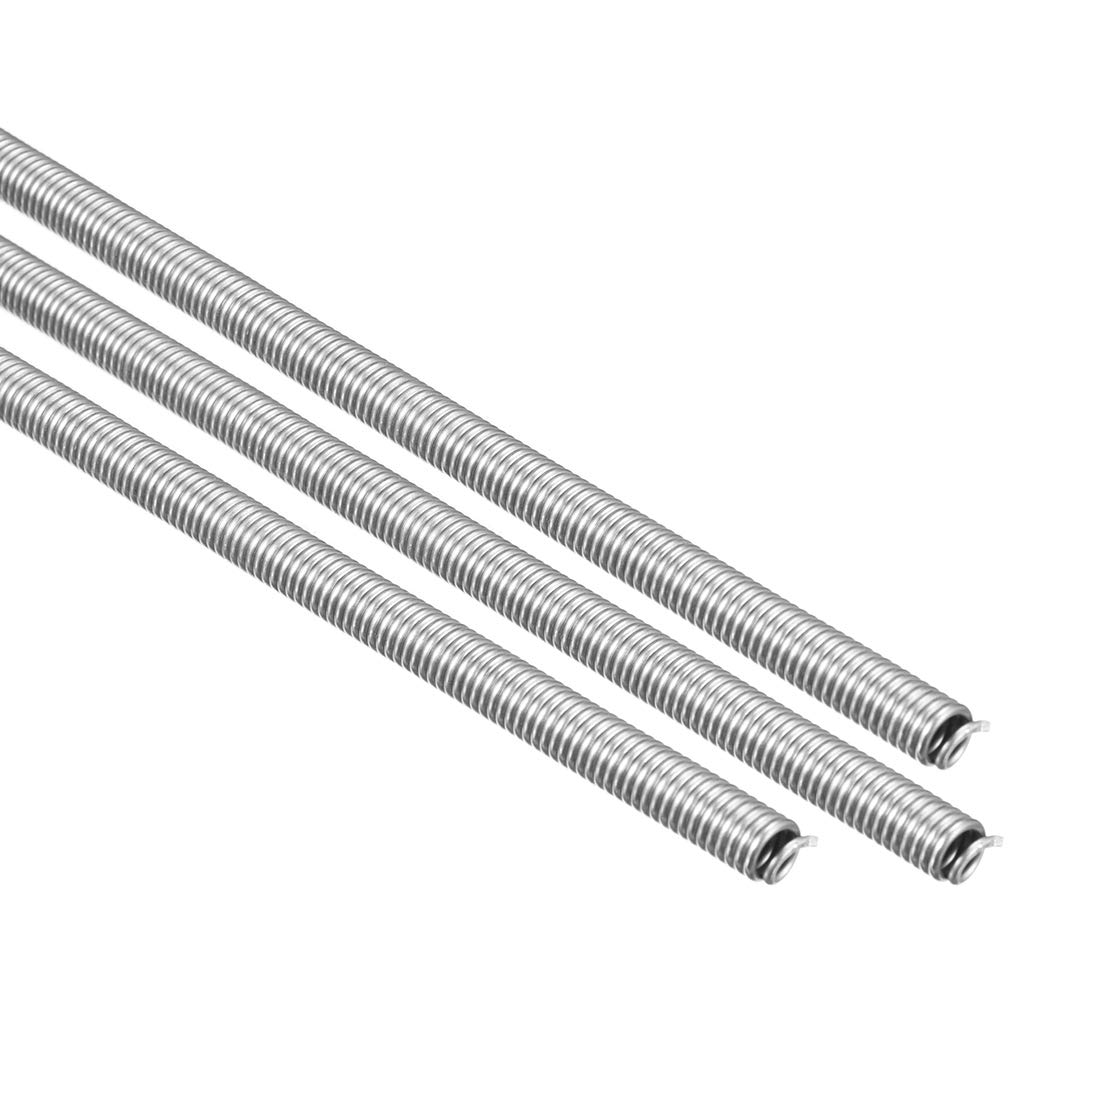 uxcell Heating Element Coil Wire AC220V 2500W / AC110V 625W Kiln Furnace Heater Wire 7mm 750mm 3PCS